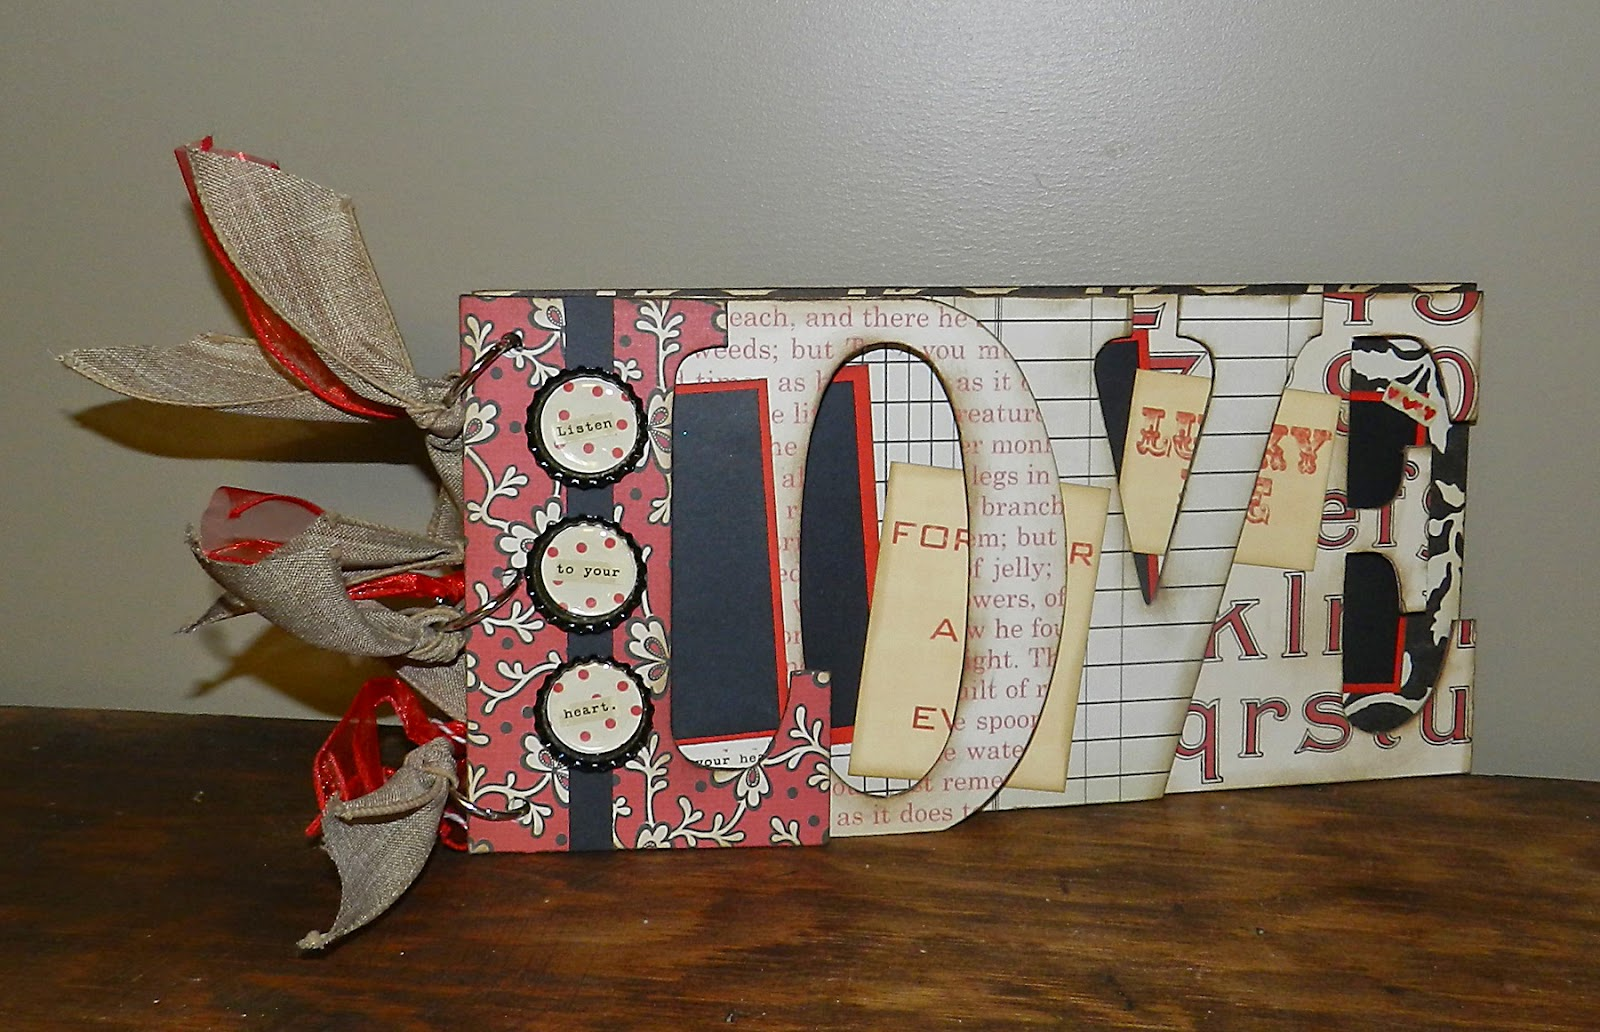 http://www.ebay.com/itm/PreMade-Handmade-Album-Valentines-Love-Photo-Ready-The-Olde-Saltbox-/261719300560?ssPageName=STRK:MESE:IT